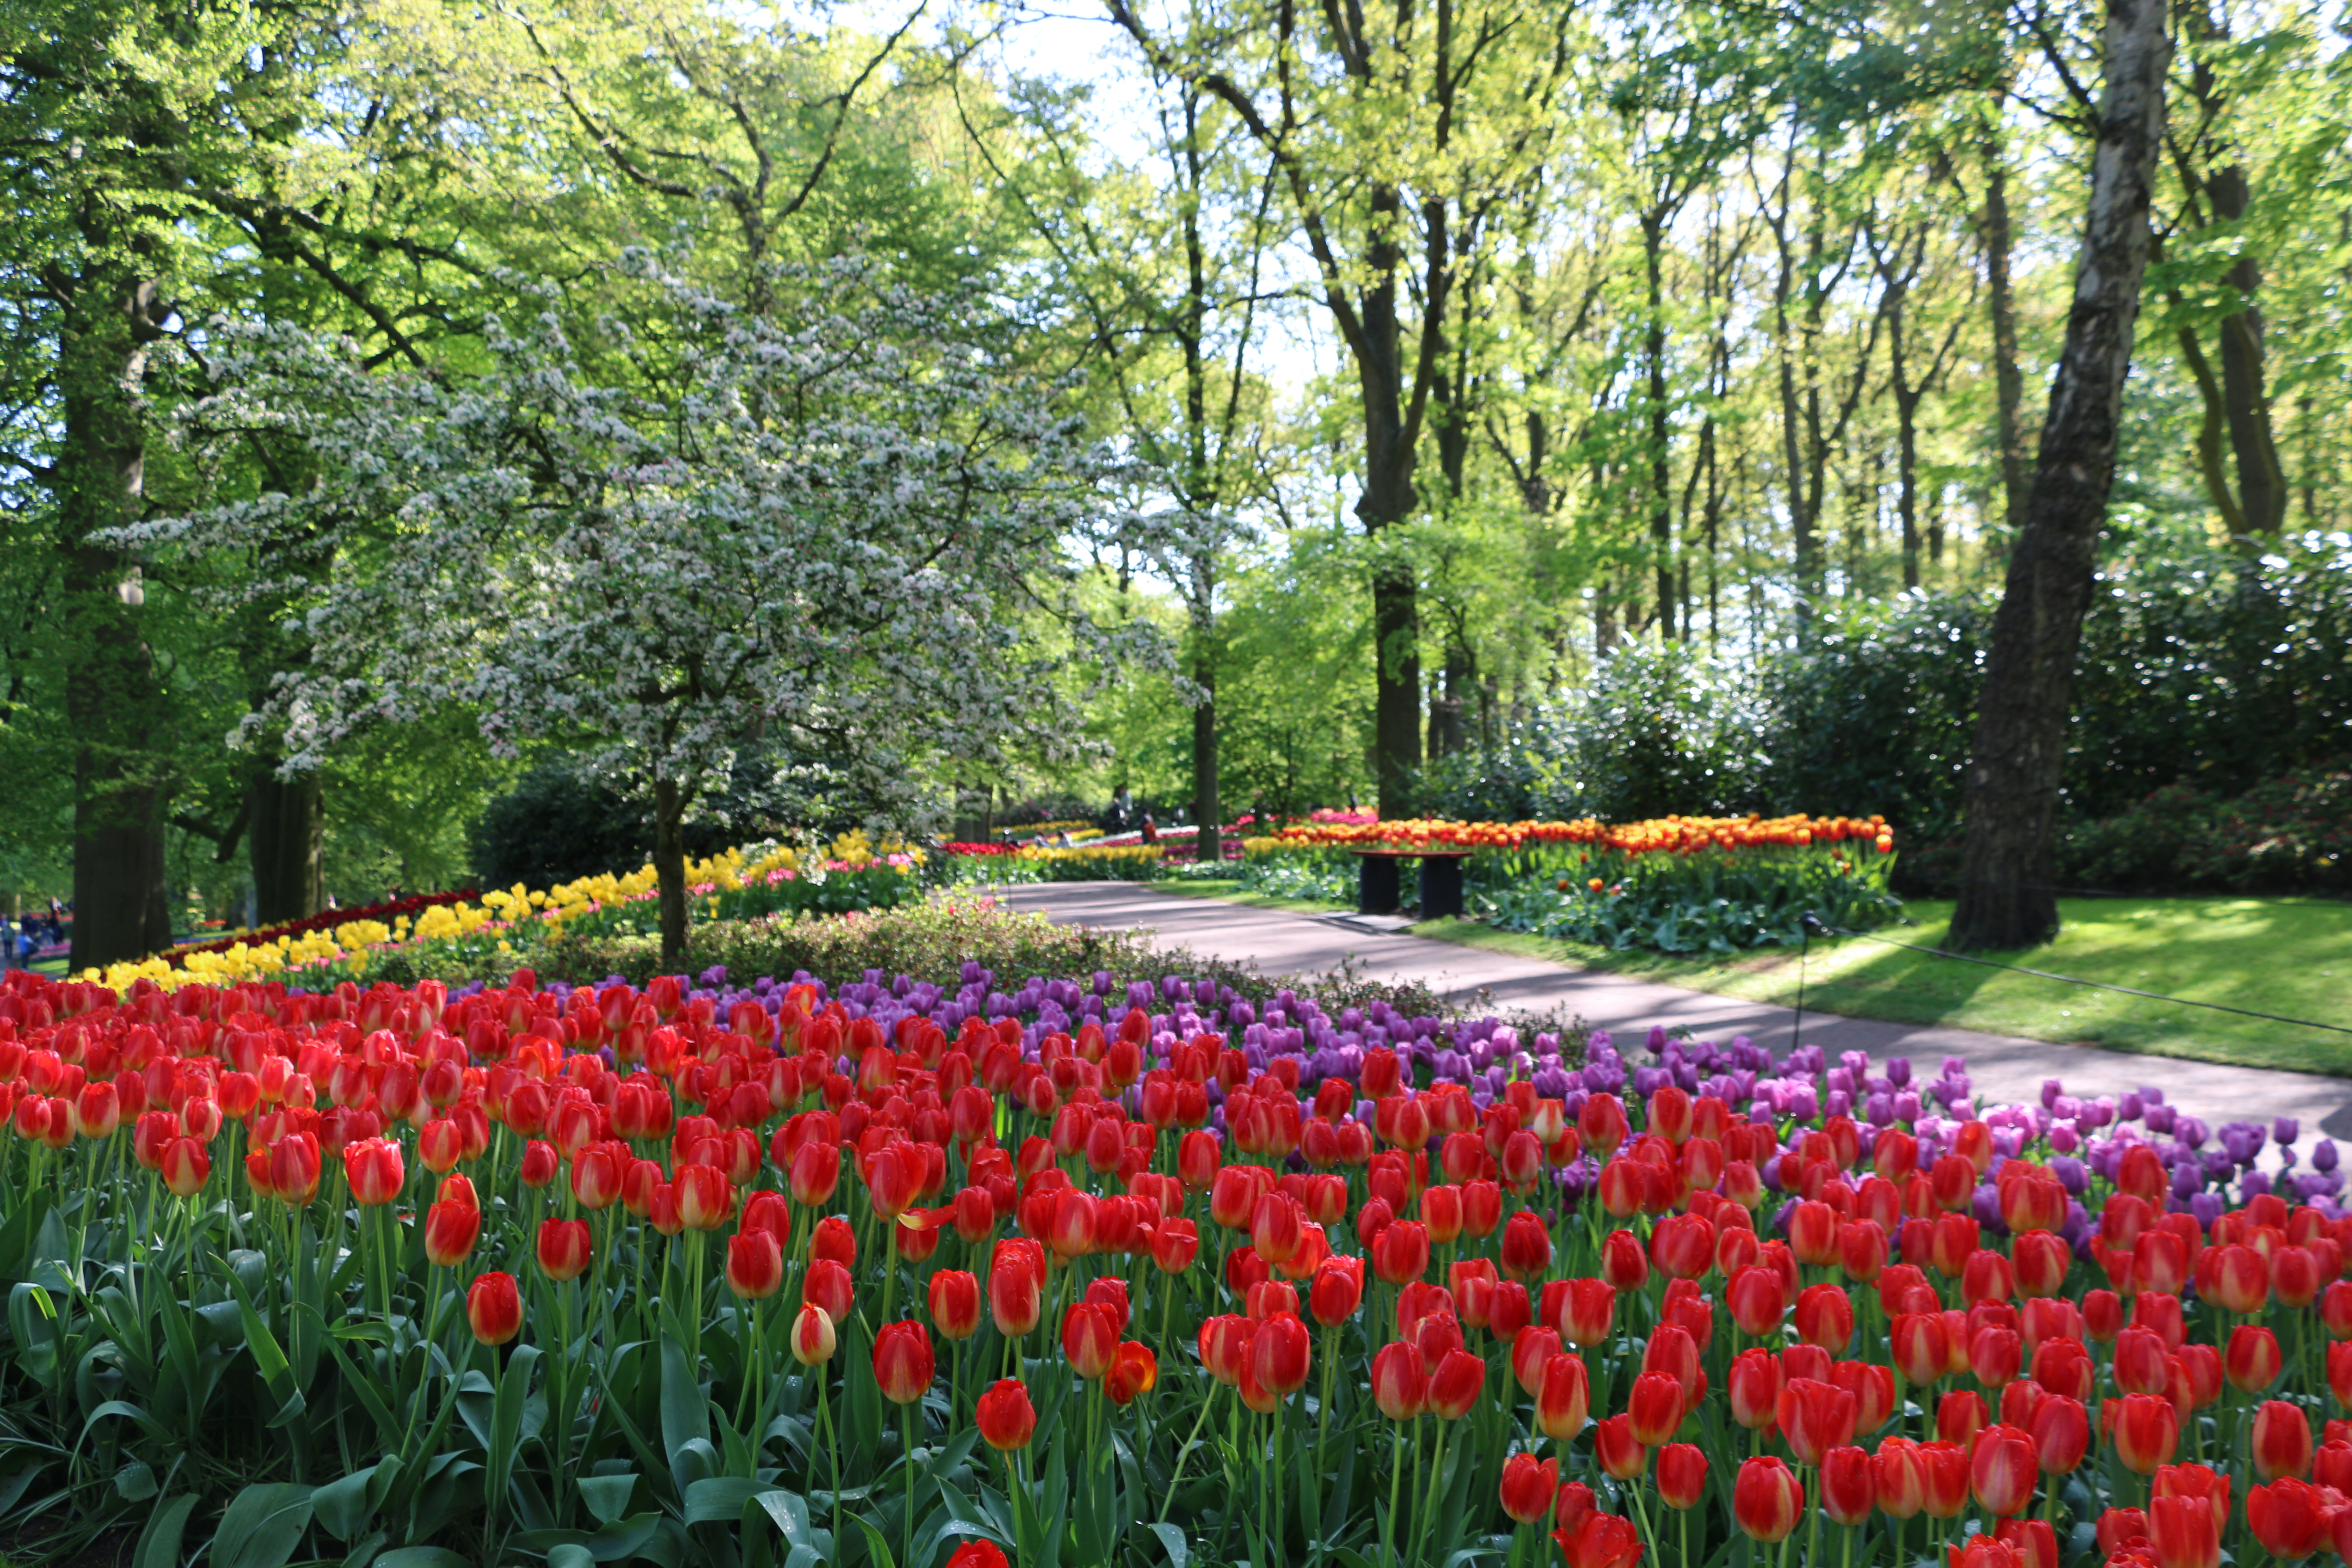 Best Time To See Tulips In Amsterdam 2020 Amsterdam Tulip Season 2020   Tulip Festival Amsterdam